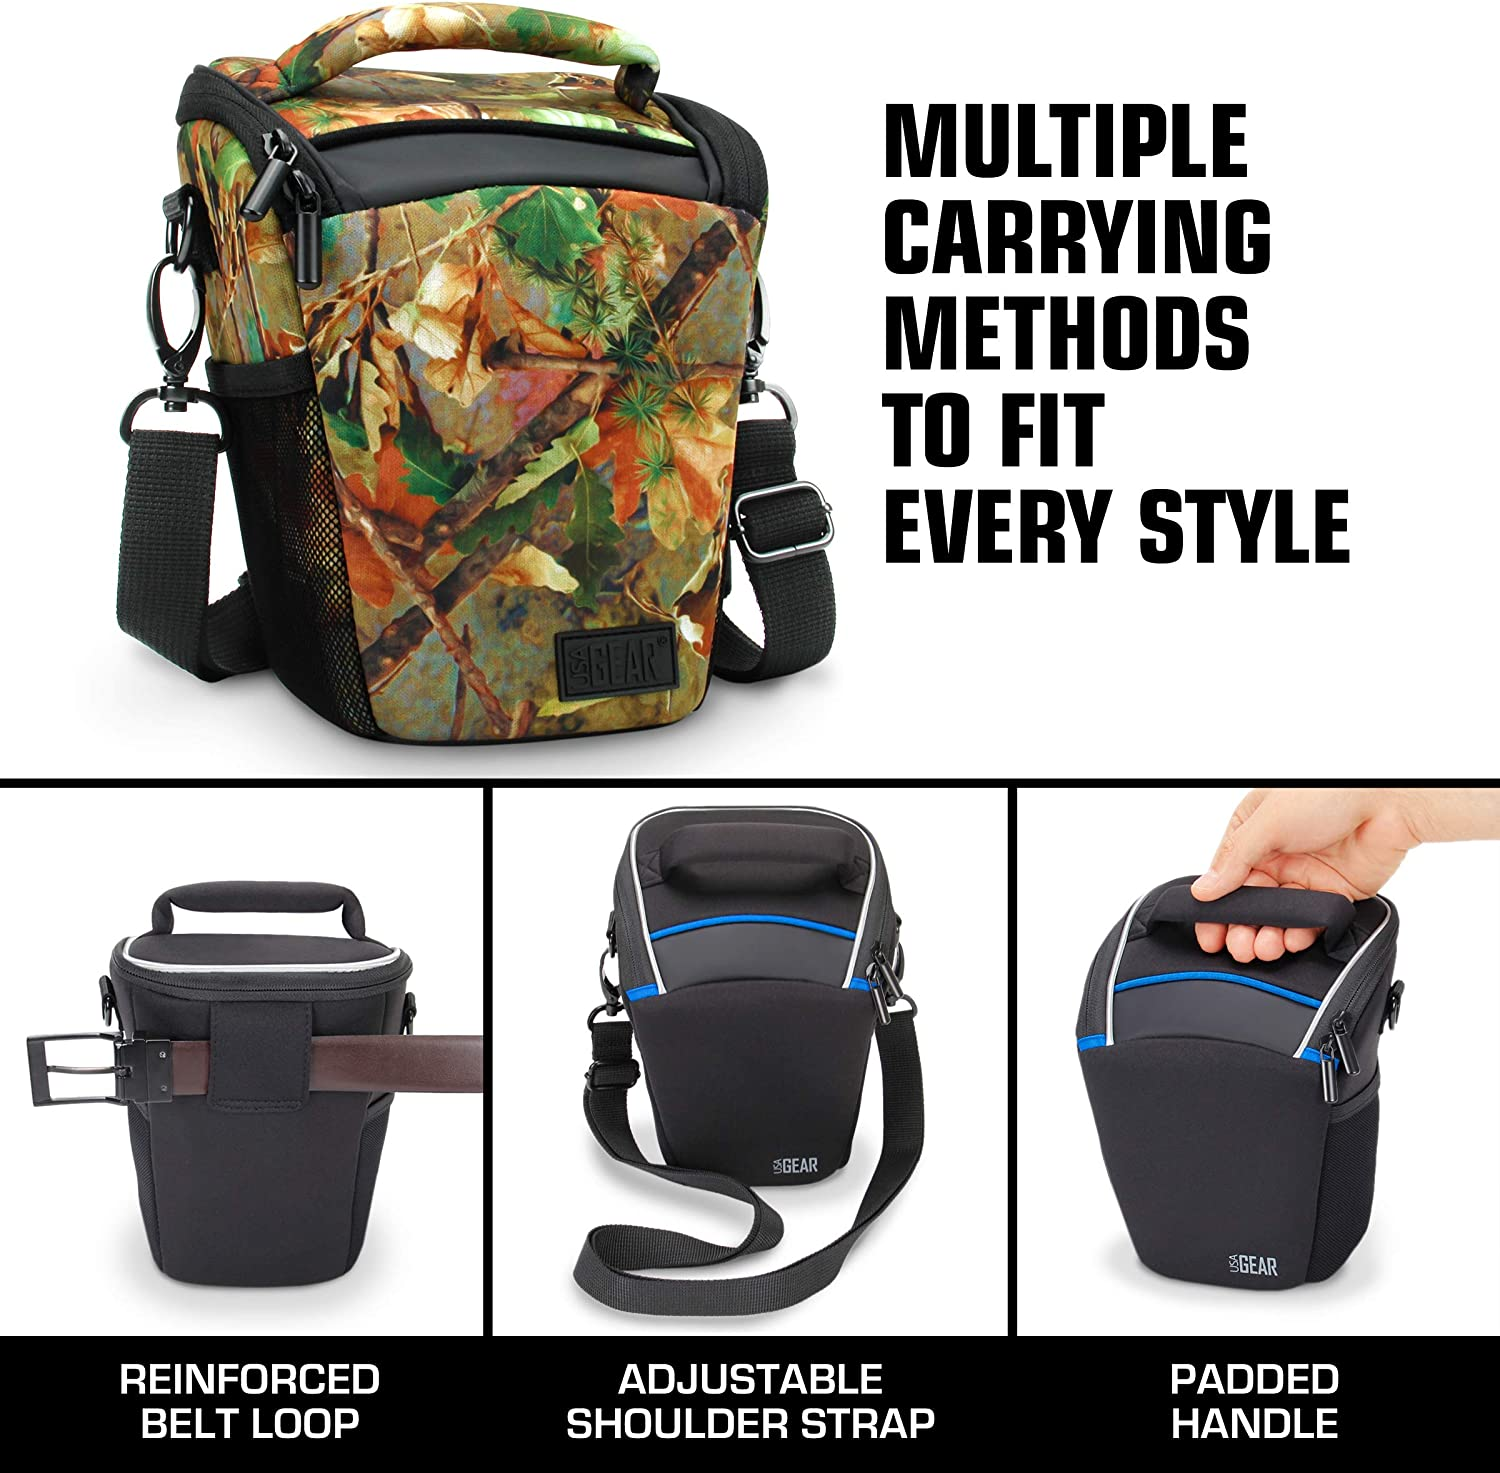 Weather Resistant Bottom Comfortable Southwest Durable and Light Weight for Travel Padded Handle with Top Loading Accessibility Adjustable Shoulder Sling USA Gear SLR Camera Case Bag